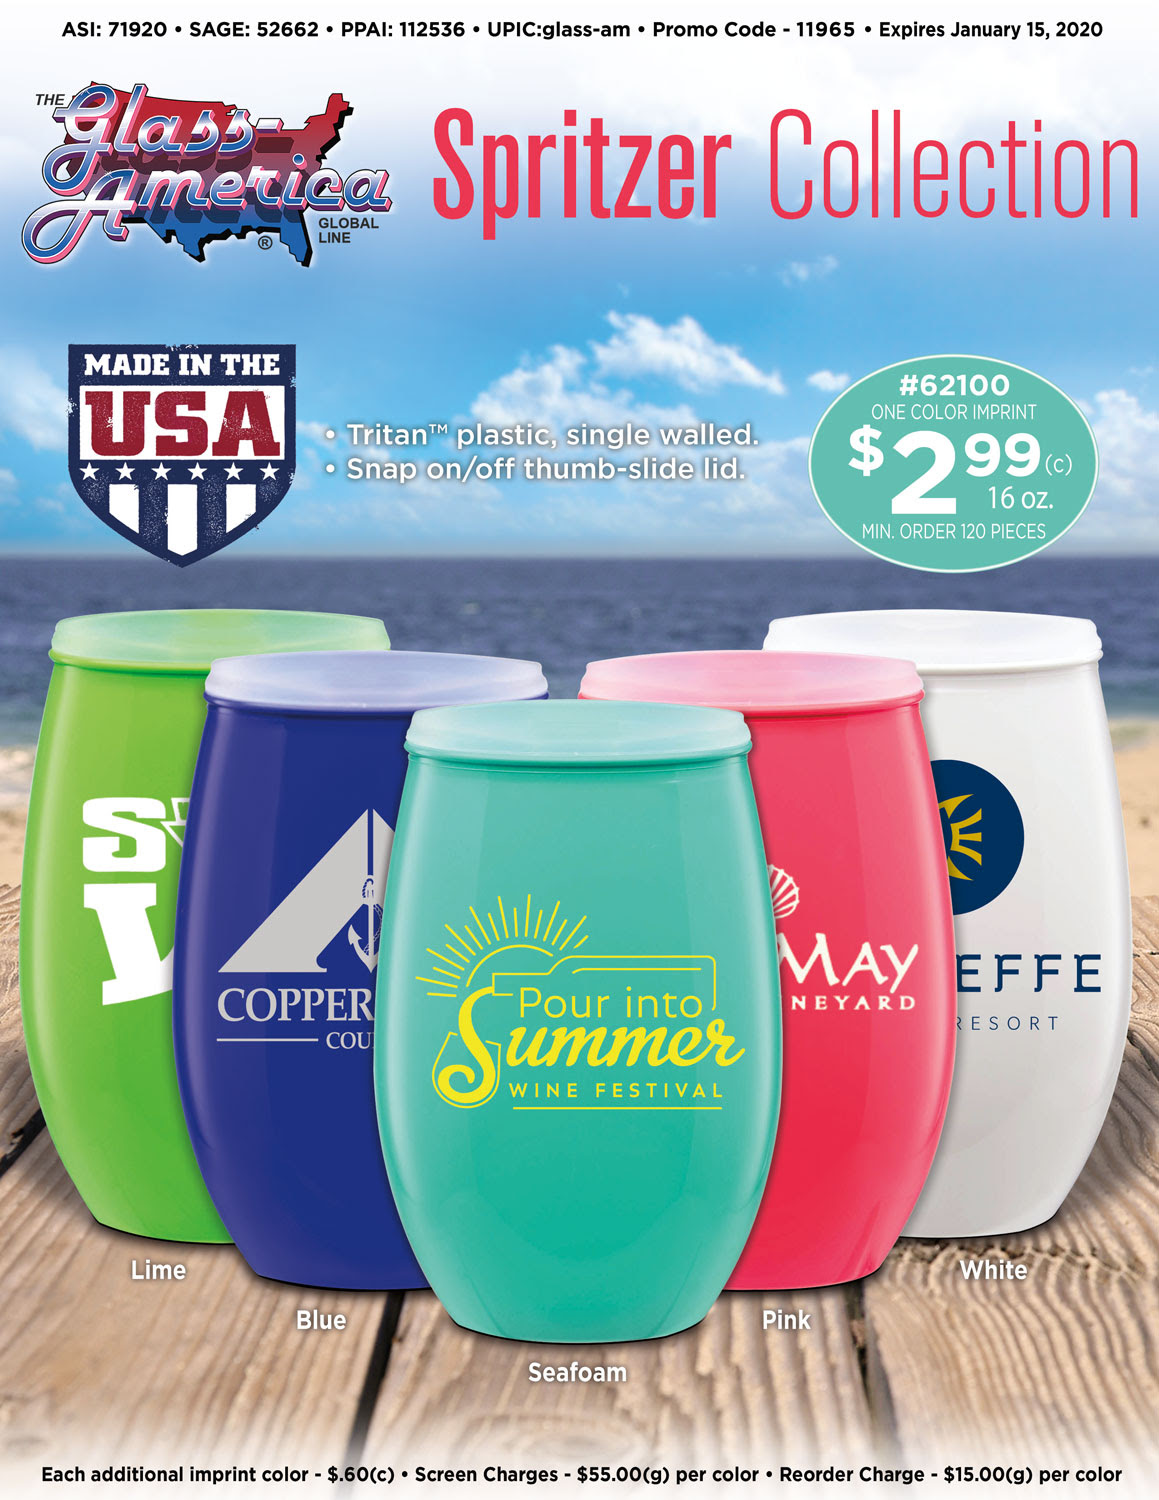 The Spritzer Collection by Glass America